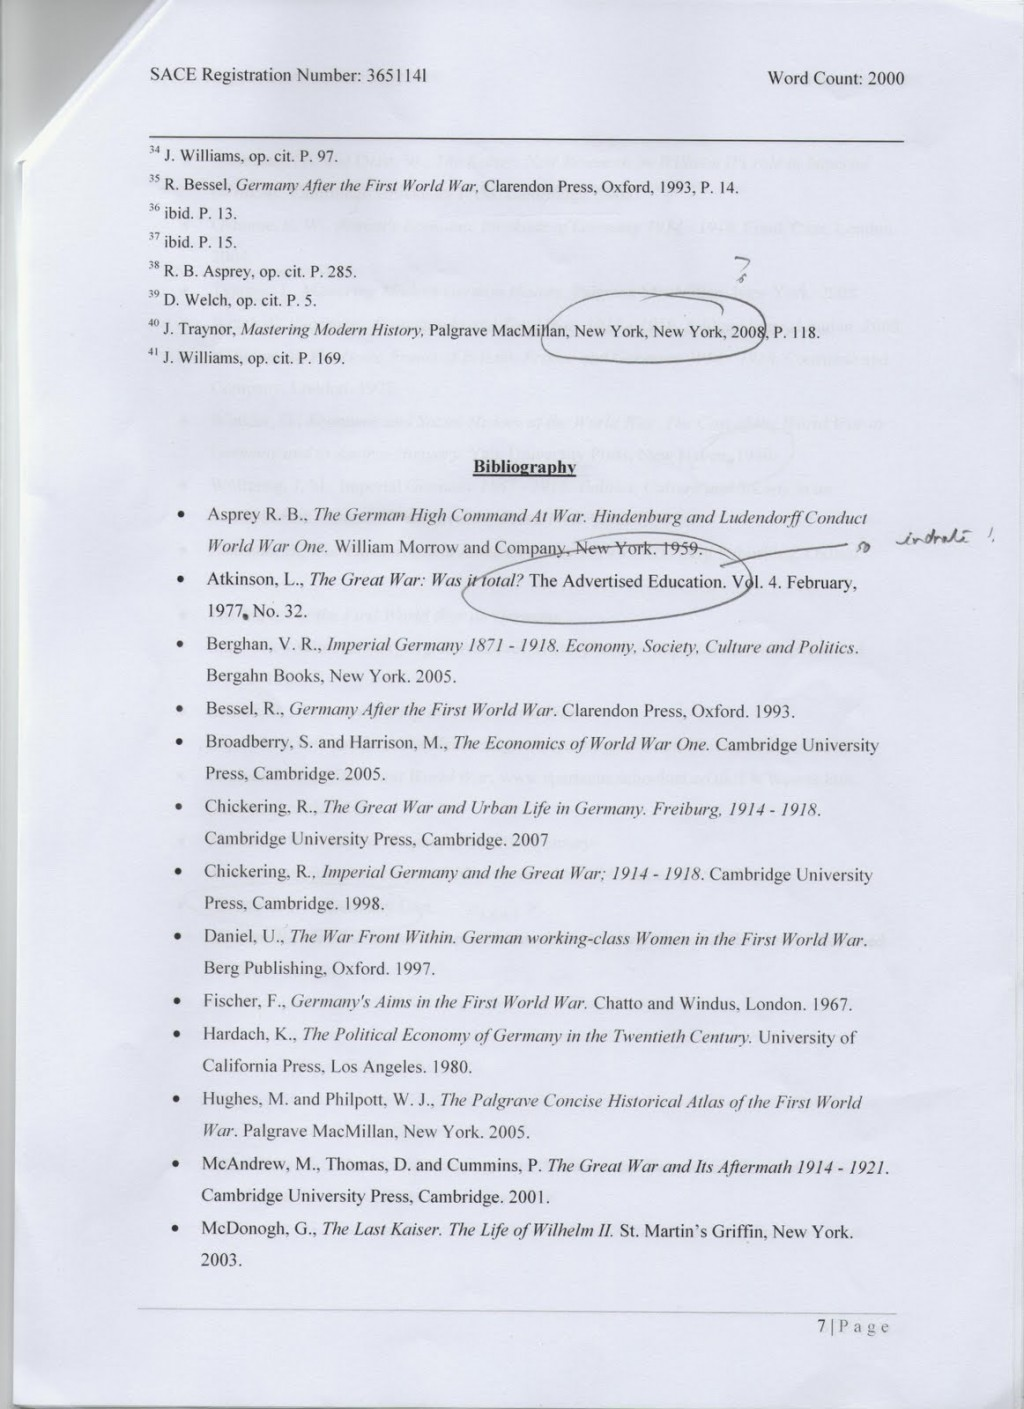 007 Uchicago Essay Questions Example Unique How To Answer 2017 University Of Chicago Large